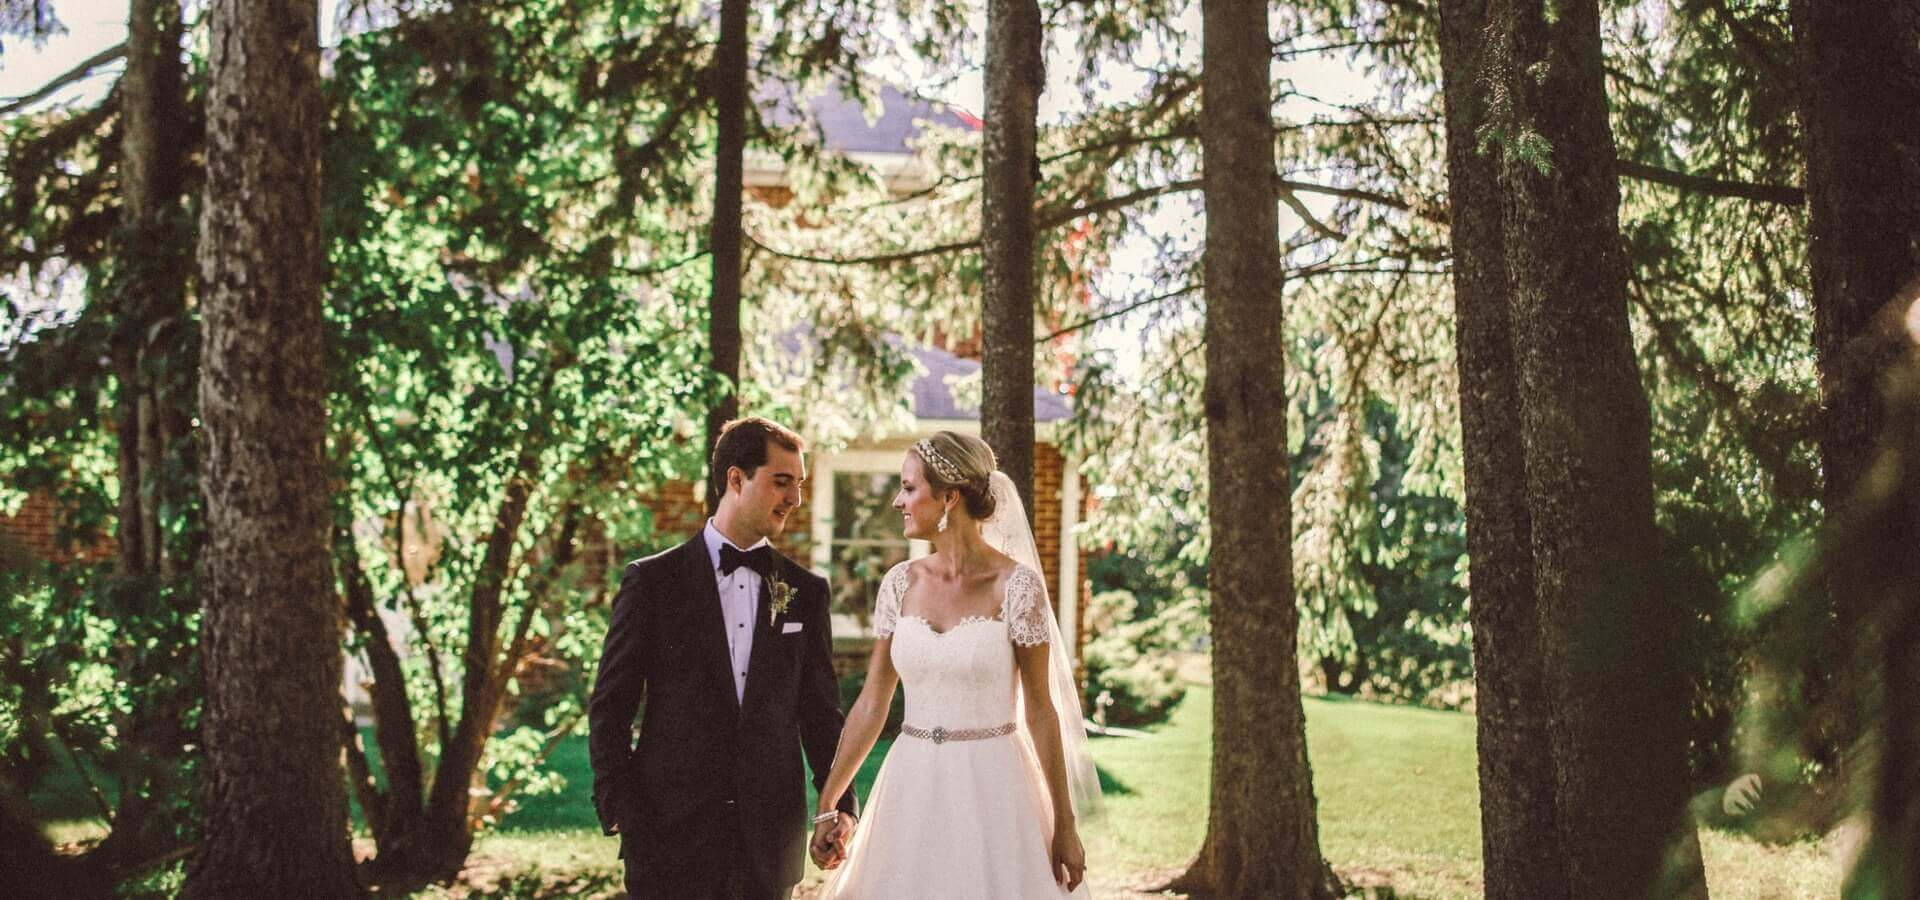 Hero image for Kaili & Tyler's  Wedding at Cambium Farms